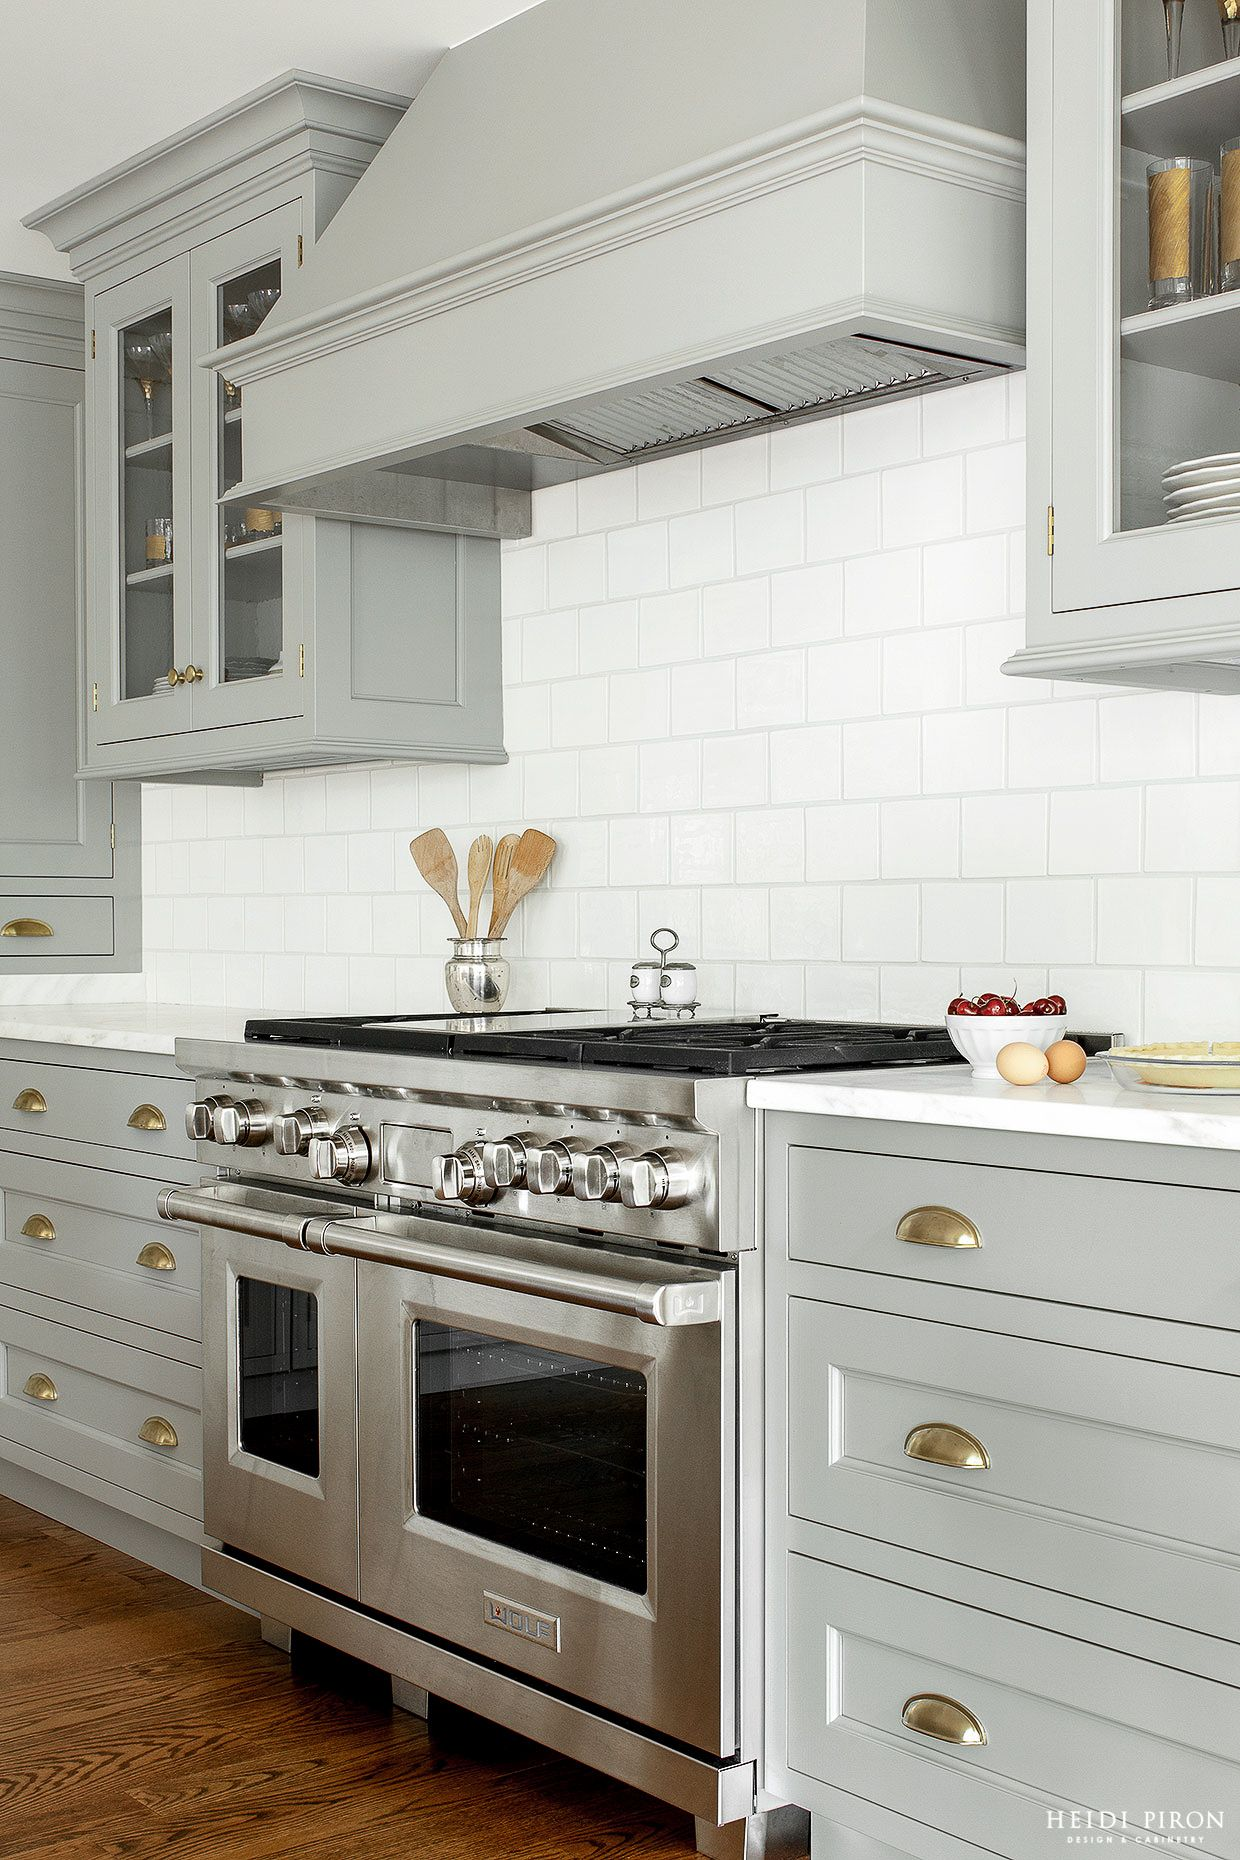 Heidi piron design and cabinetry painted gray with brass hardware